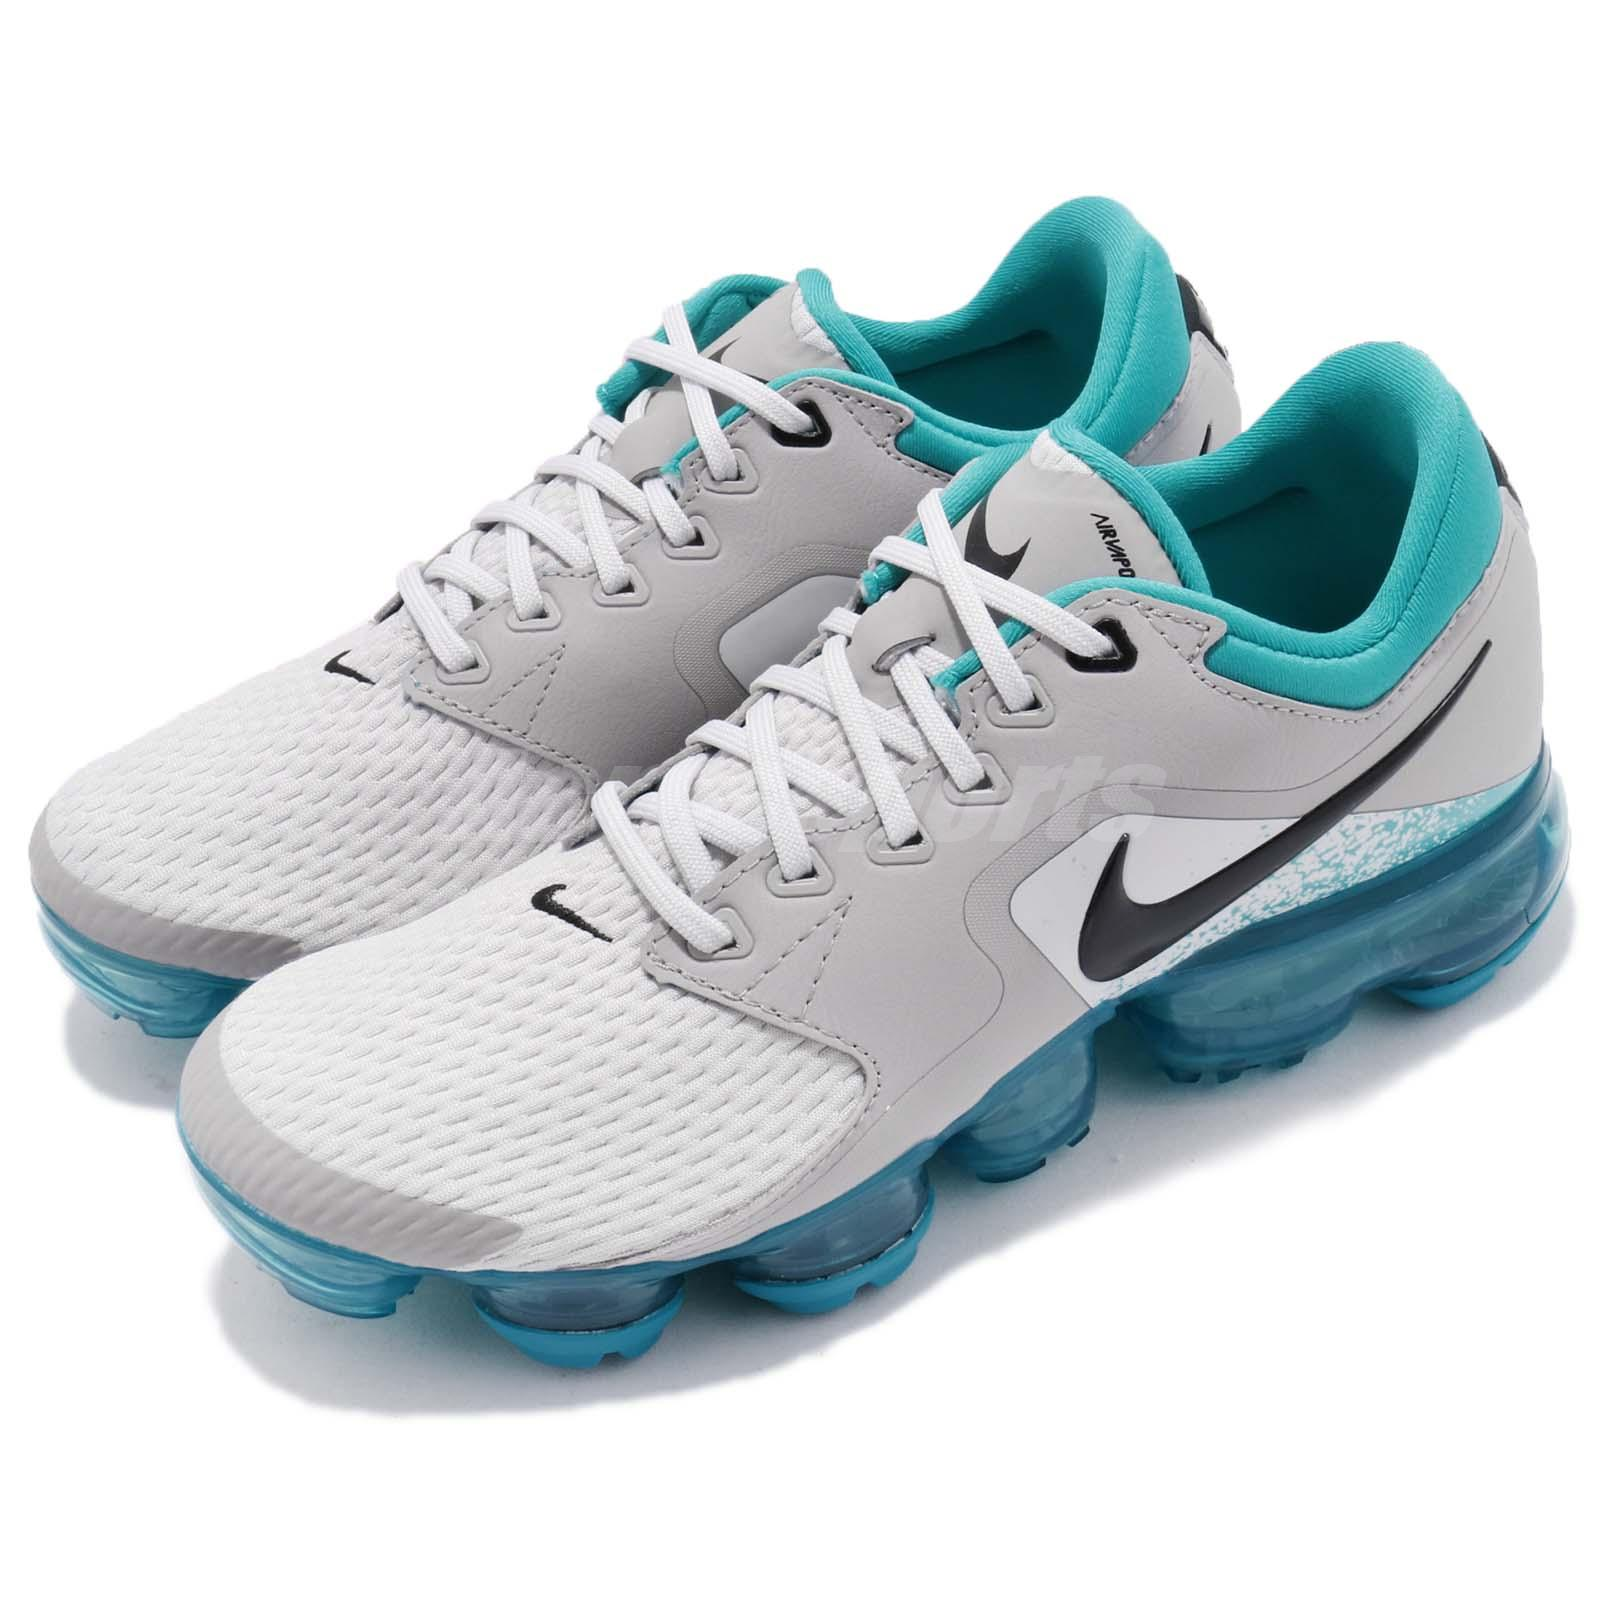 official photos e7fc0 f5bb6 Details about Nike Air Vapormax GS Vast Grey Blue Black Kids Women Running  Shoes 917963-011